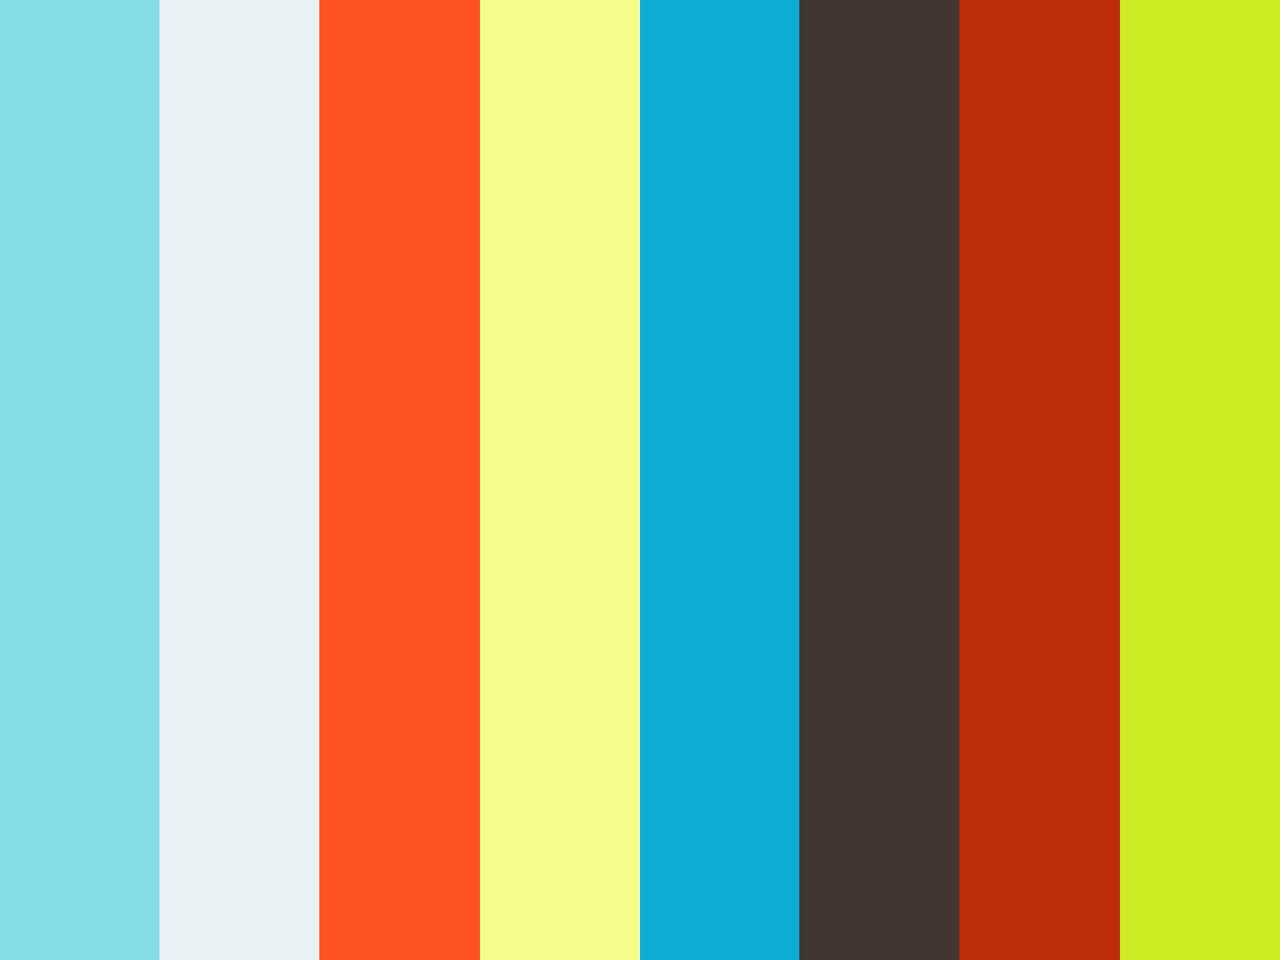 960 #1B7820 Garage Door Opener Repair In Sugar Land TX On Vimeo picture/photo Garage Doors Openers Repair 38391280